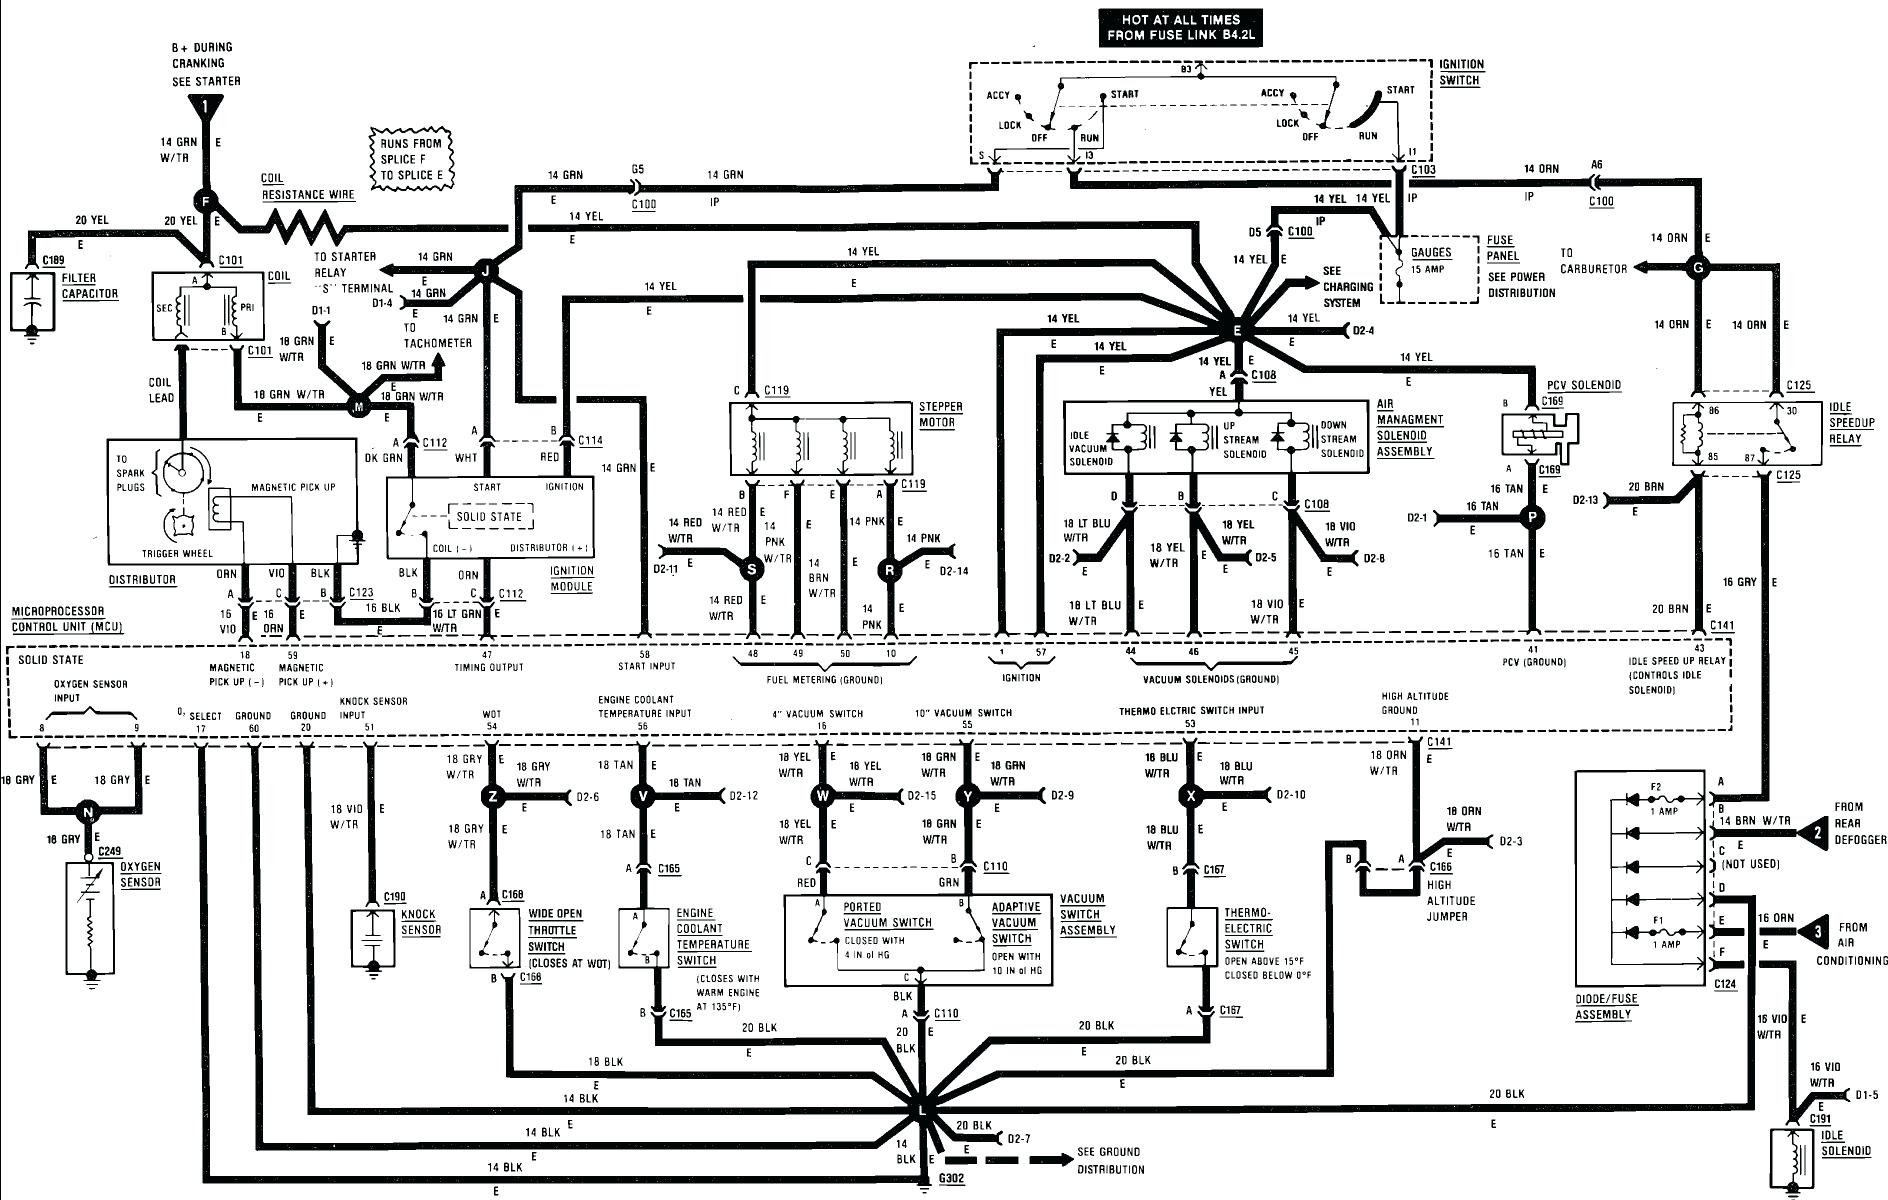 1995 jeep wrangler ignition wiring diagram - fusebox and wiring diagram  circuit-aspect - circuit-aspect.id-architects.it  diagram database - id-architects.it